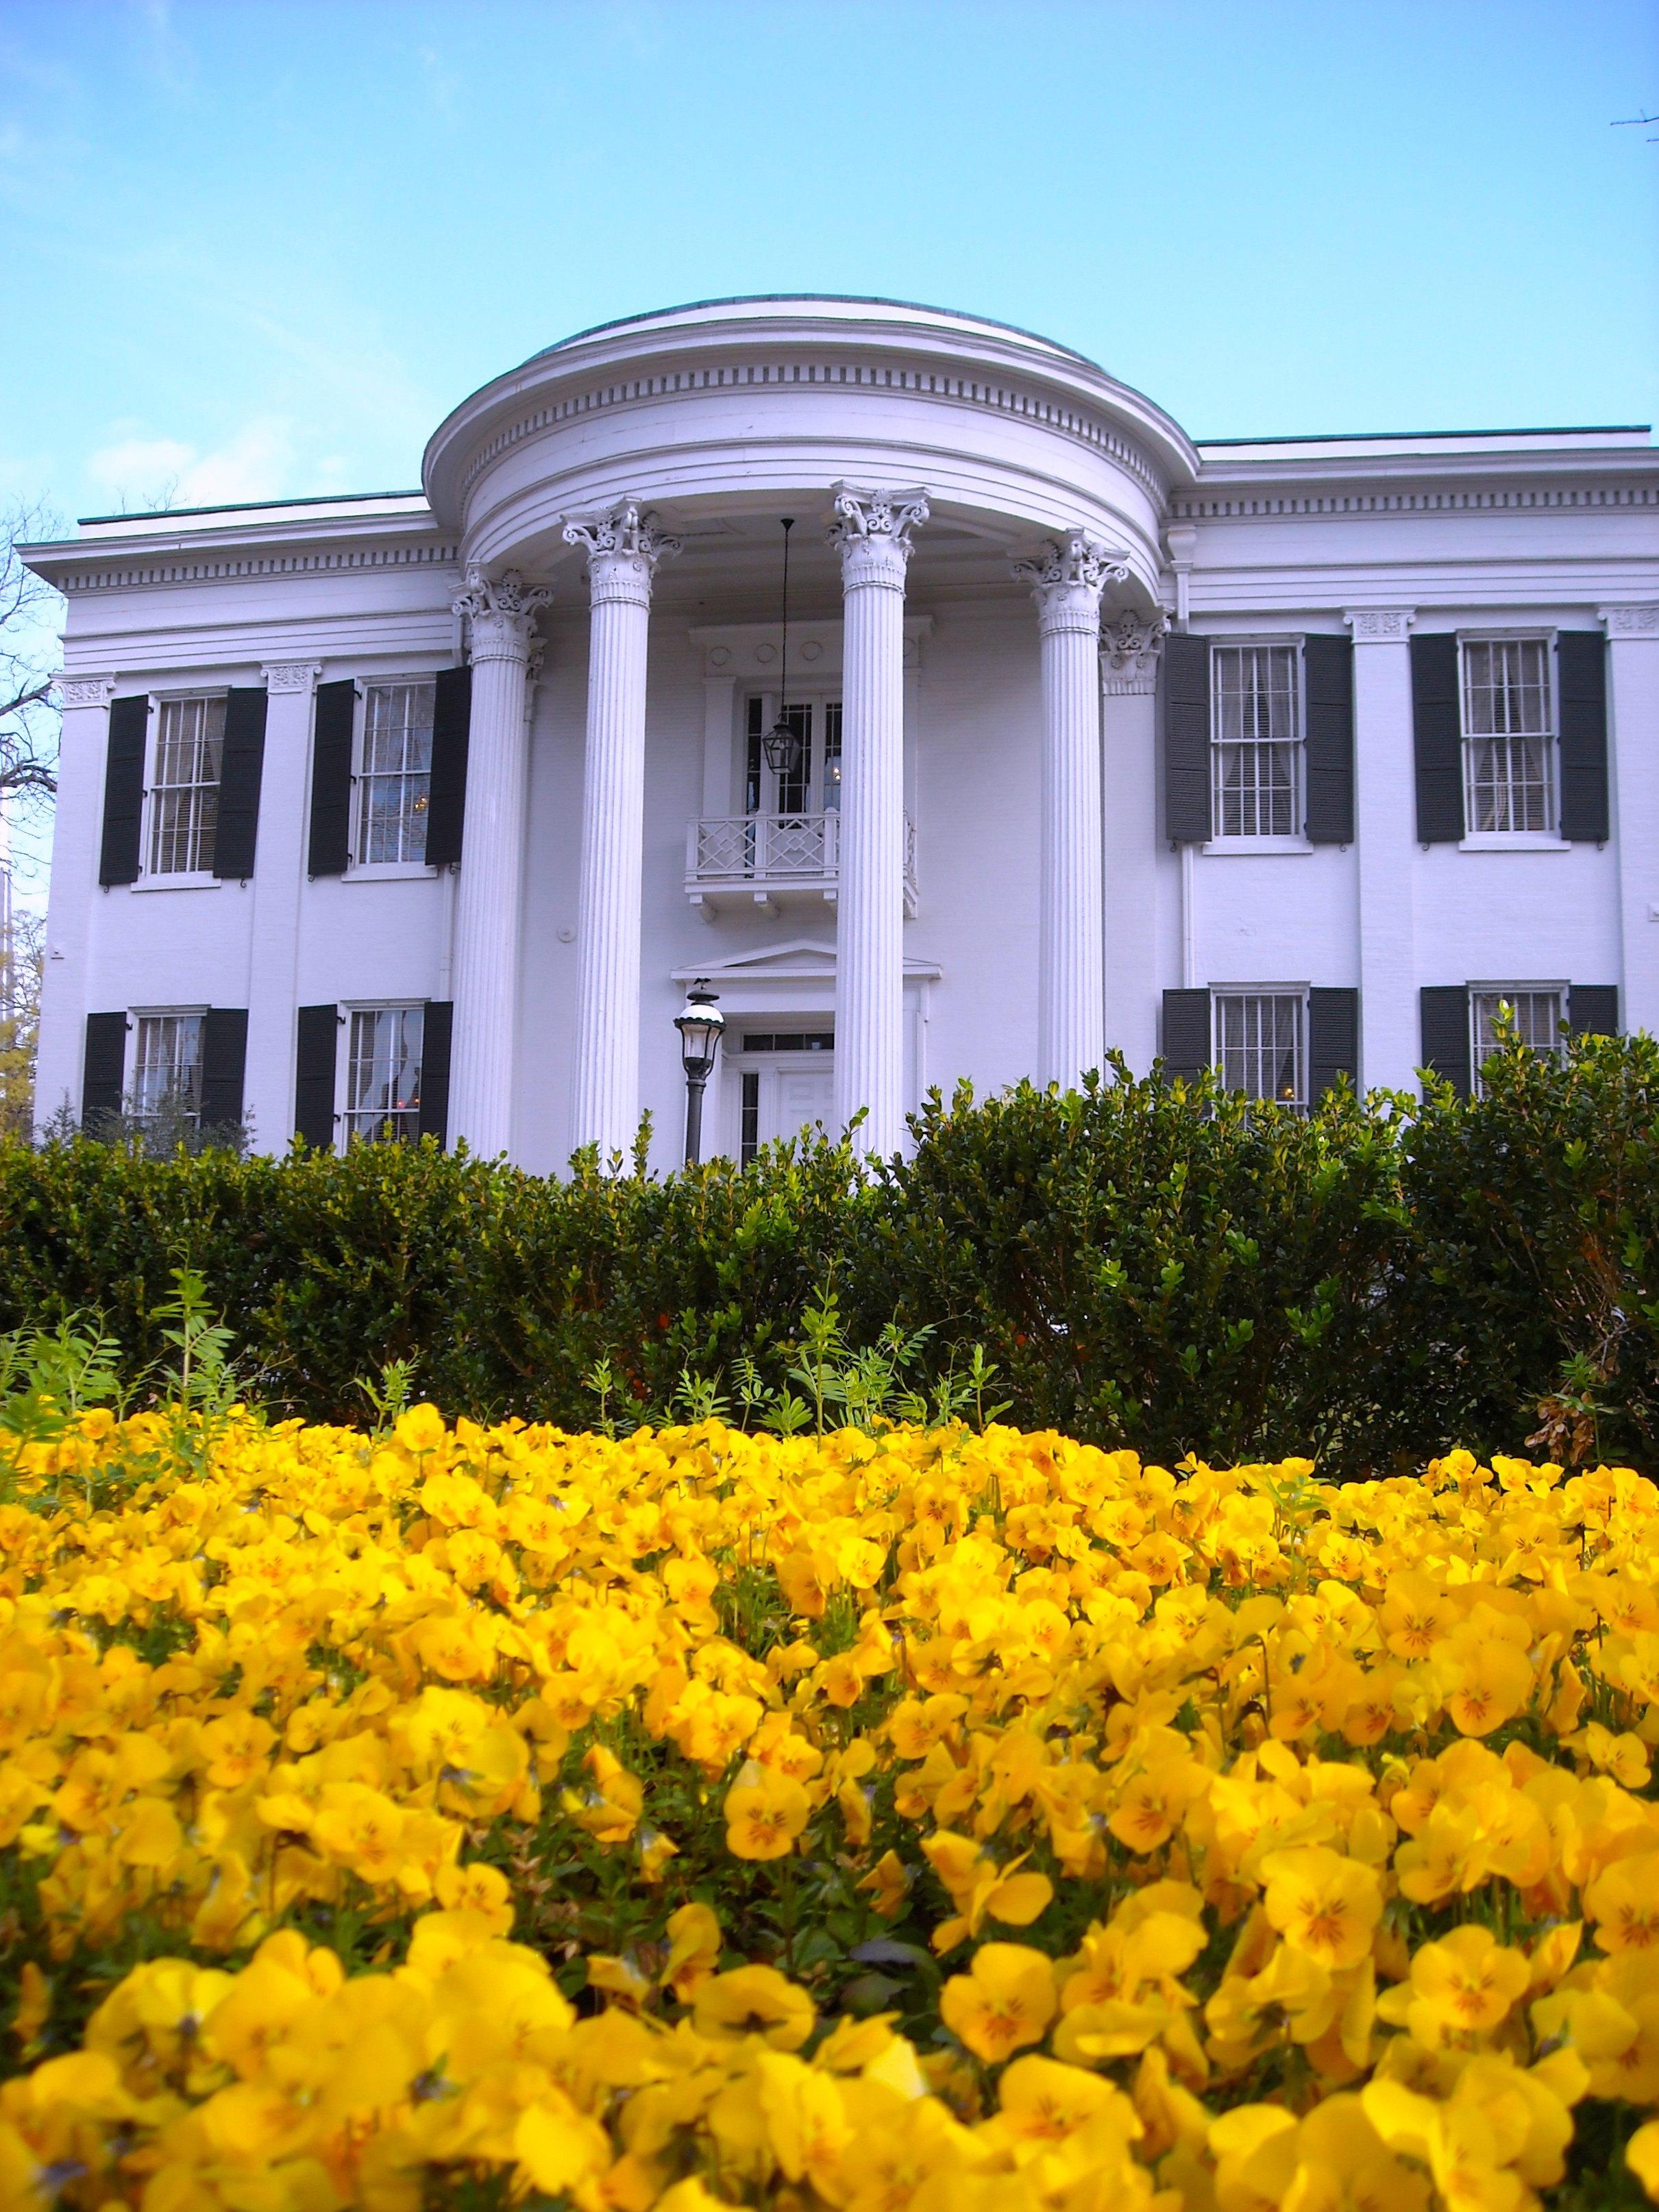 """Mississippi Governors Mansion"" by Charlie Brenner from Jackson Mississippi, USA - Licensed under CC BY-SA 2.0 via Wikimedia Commons - https://commons.wikimedia.org/wiki/File:Mississippi_G"